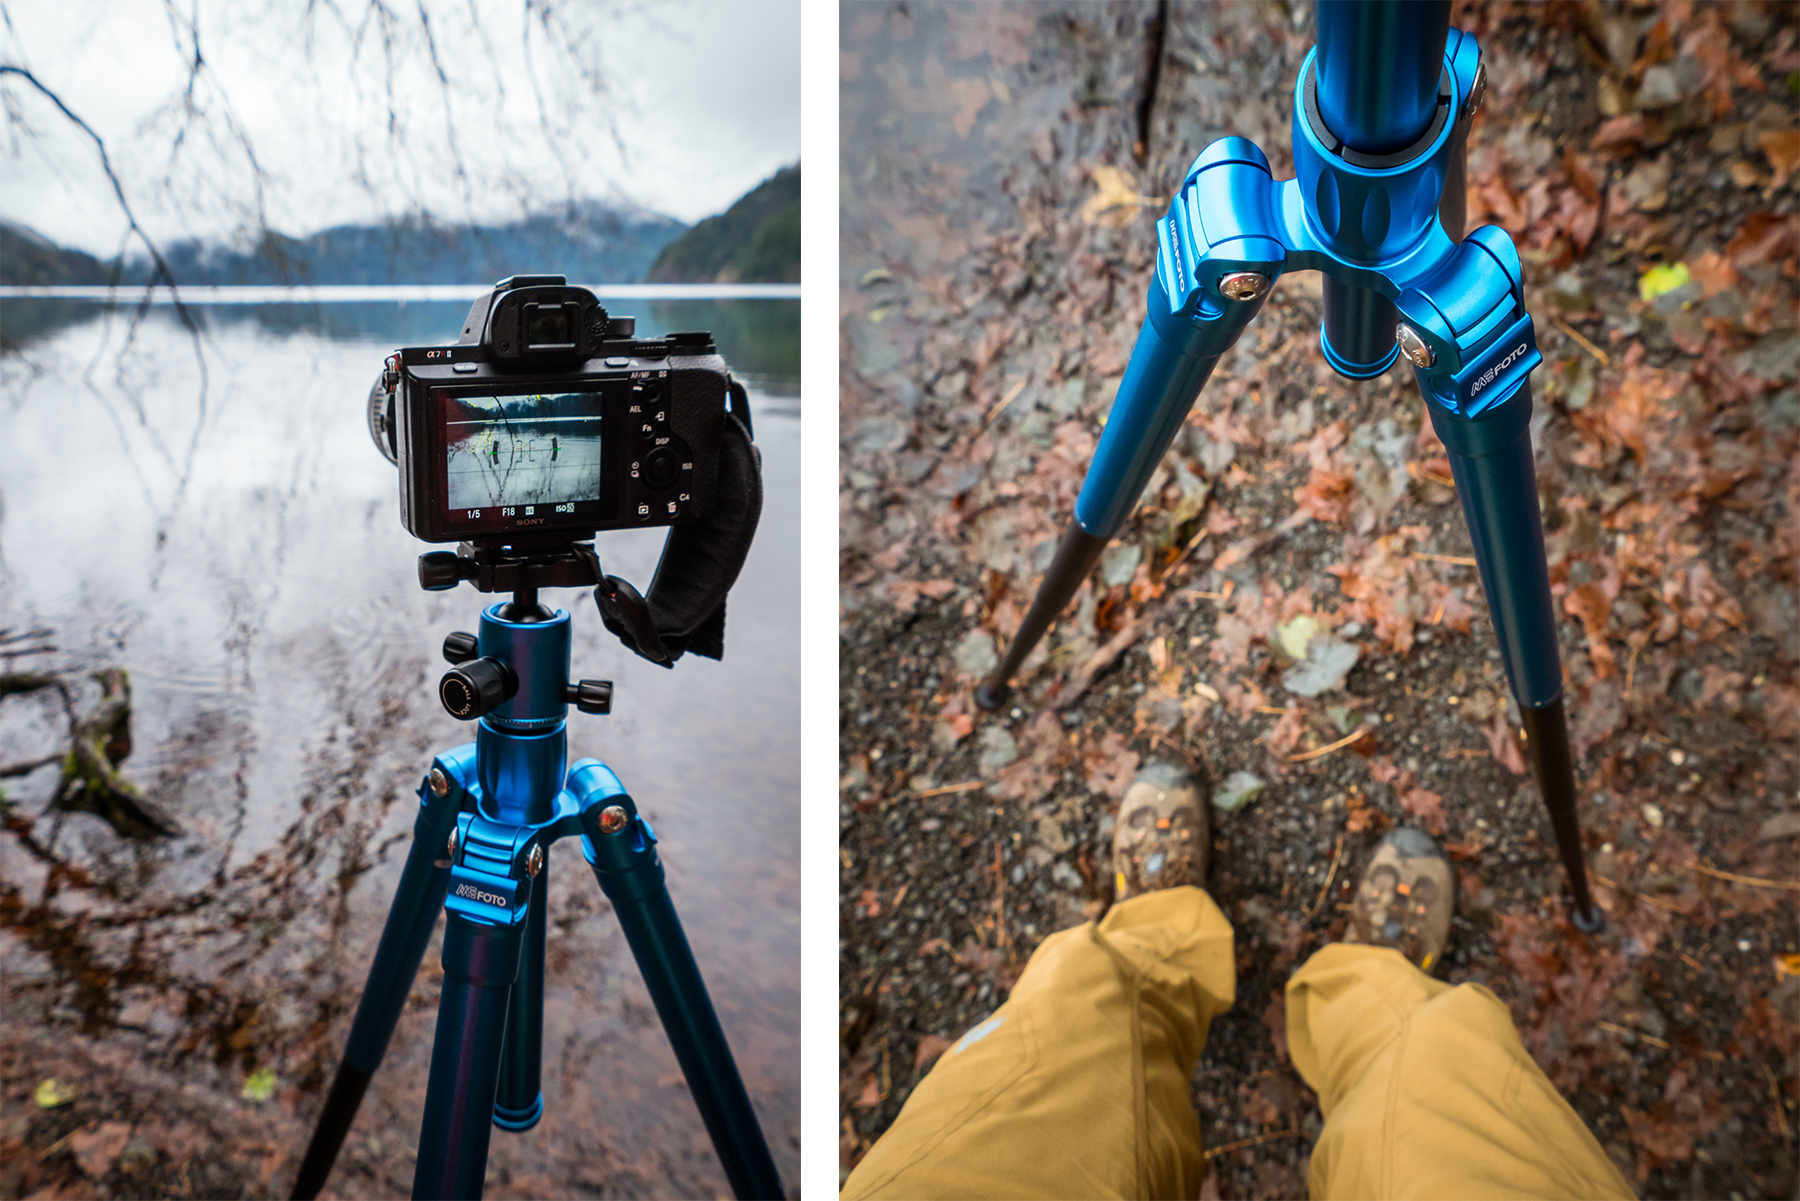 Using the new MeFOTO Globetrotter Air tripod at Lake Crescent.